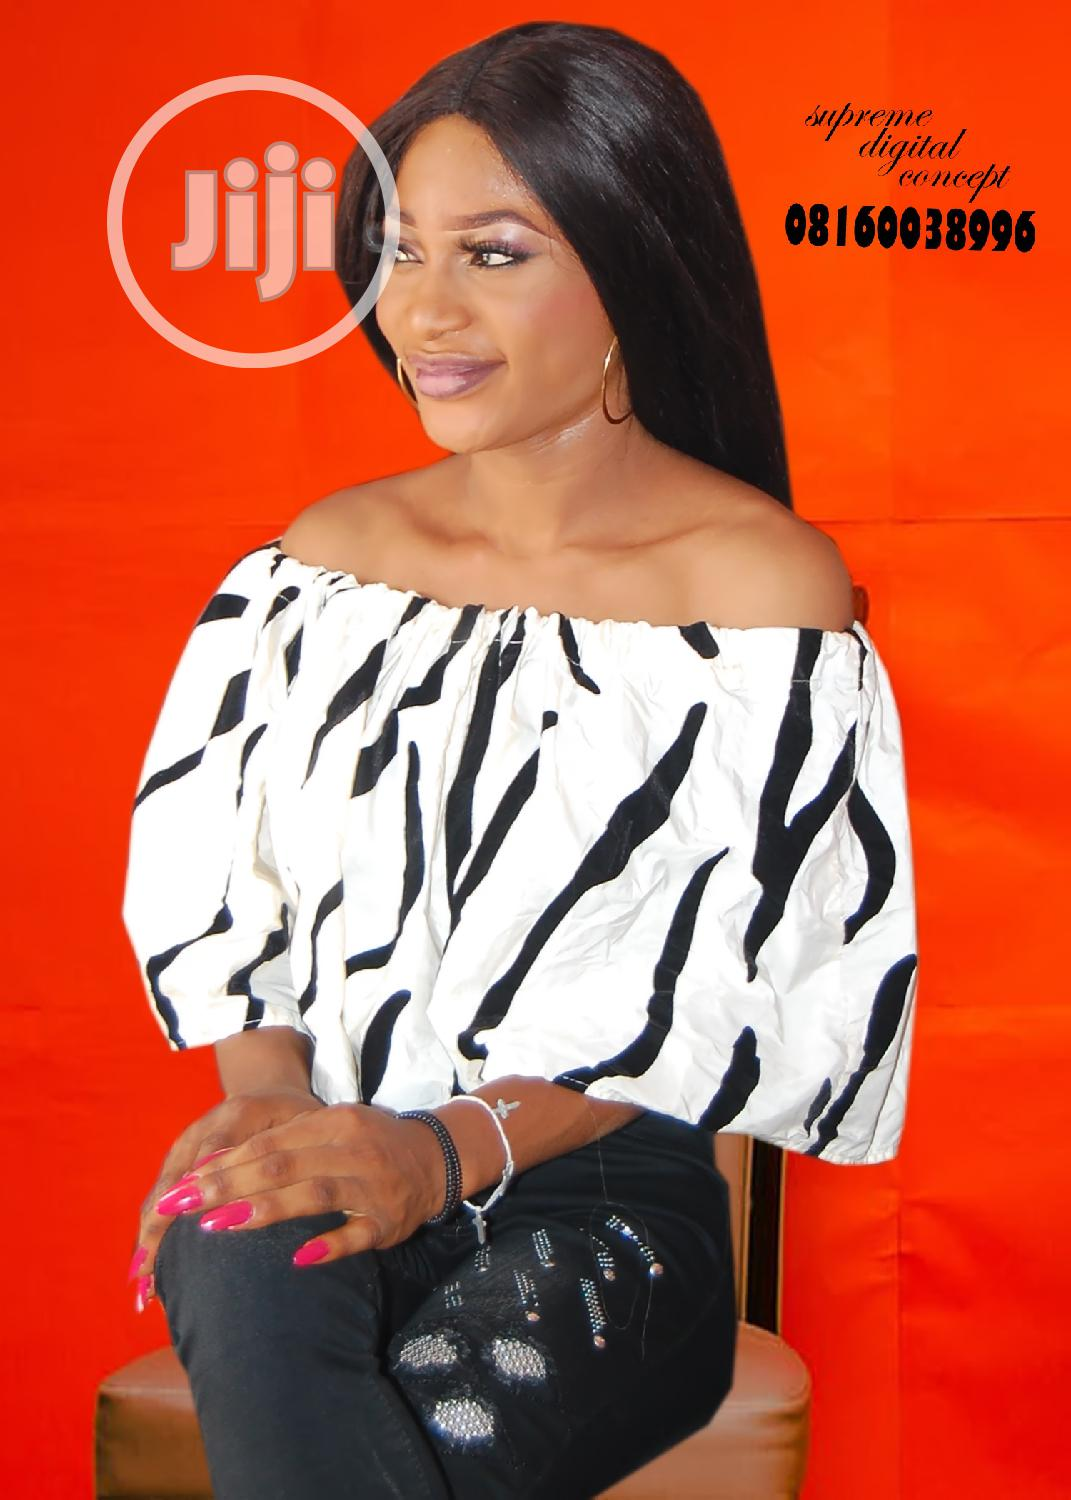 Photo Shoot | Photography & Video Services for sale in Ikeja, Lagos State, Nigeria